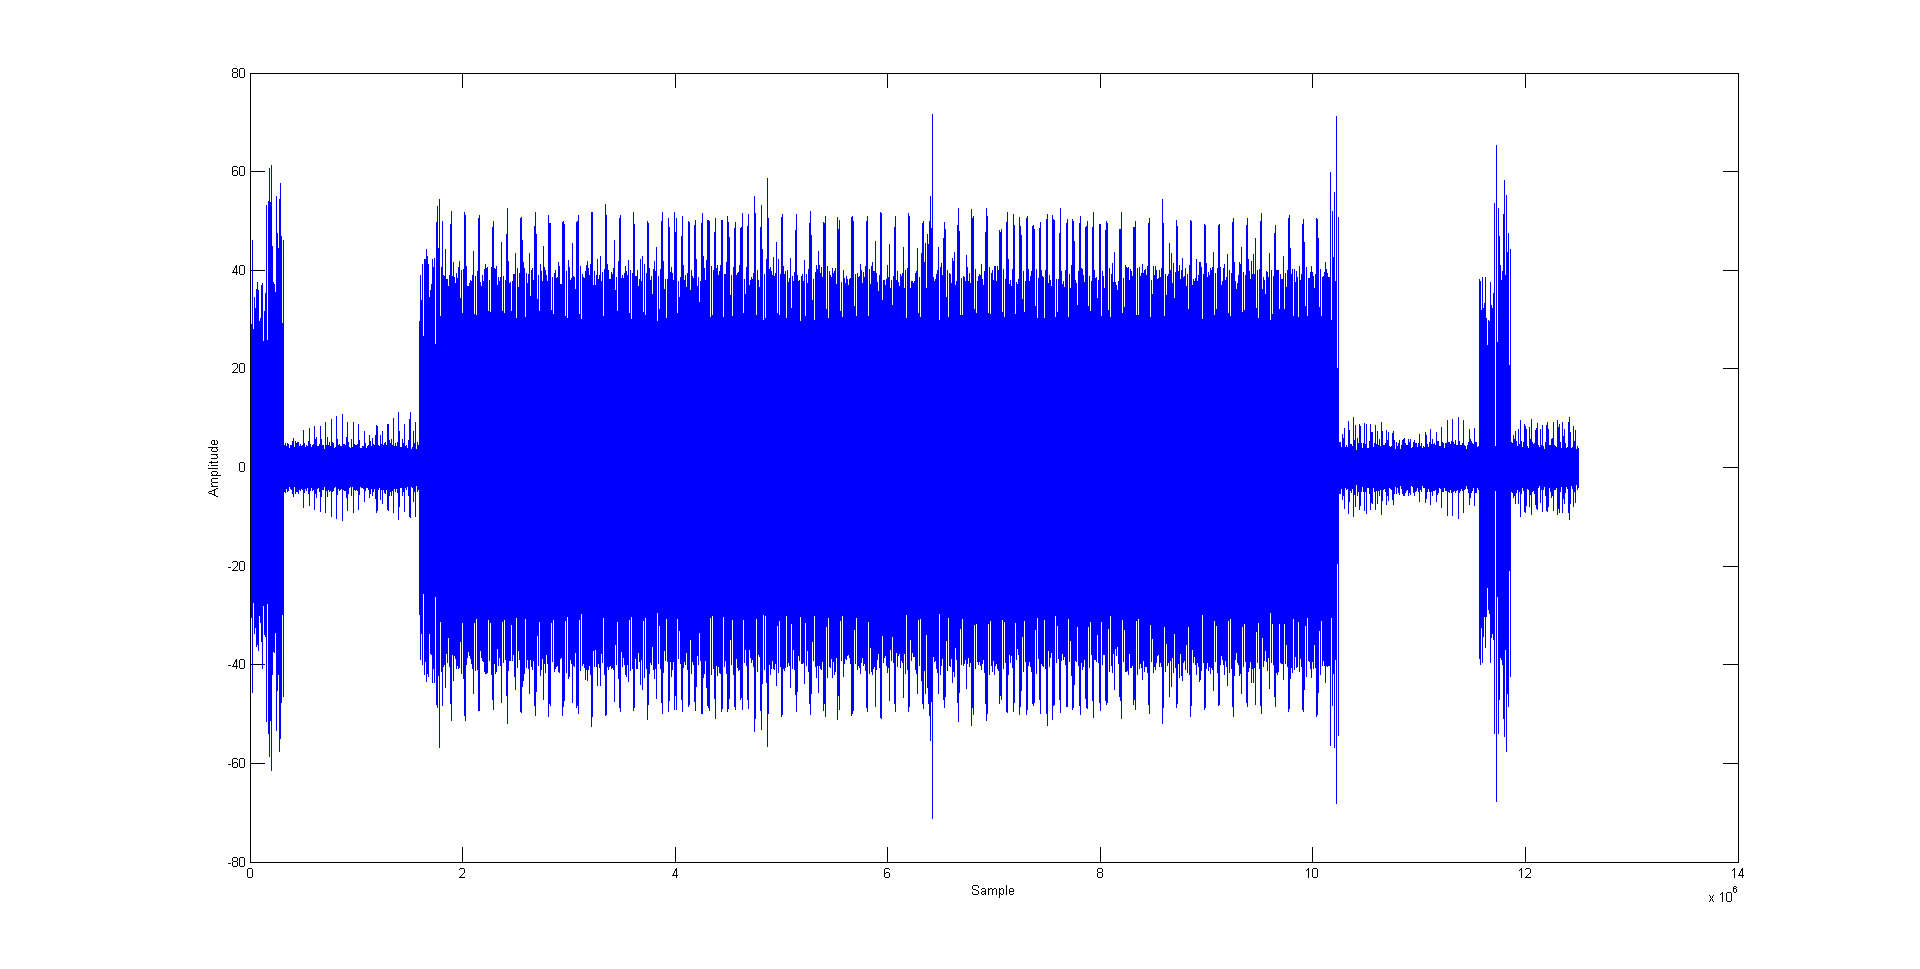 Figure 3.7: Simple RSA 1024 bit traces: Top - Raw trace.